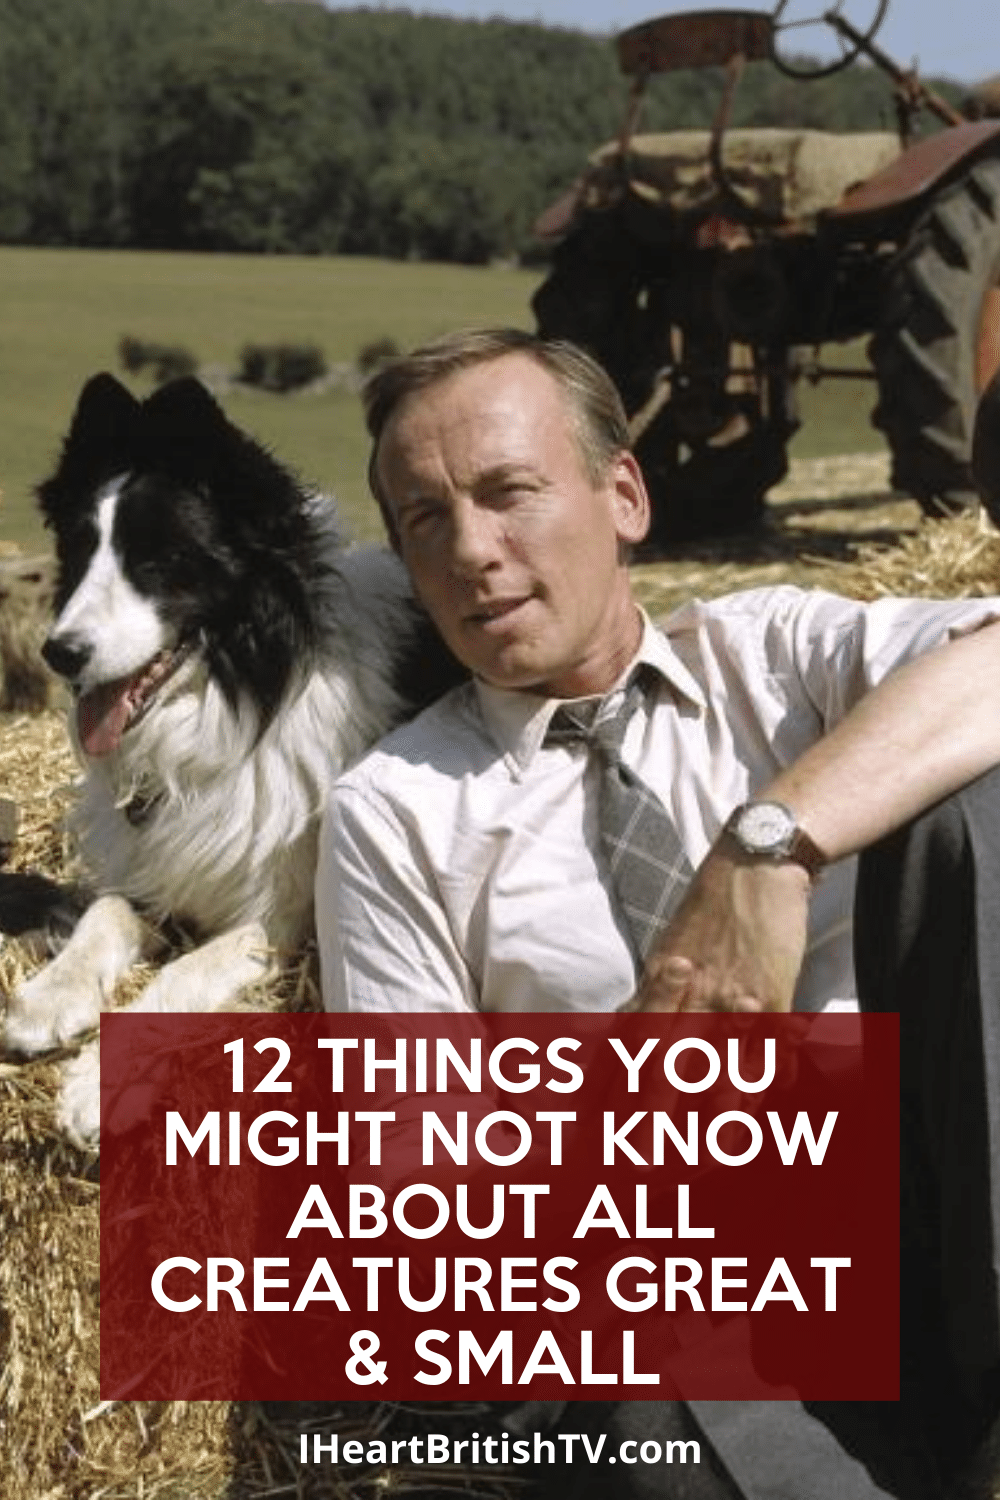 12 Things You Might Not Know About All Creatures Great & Small 5